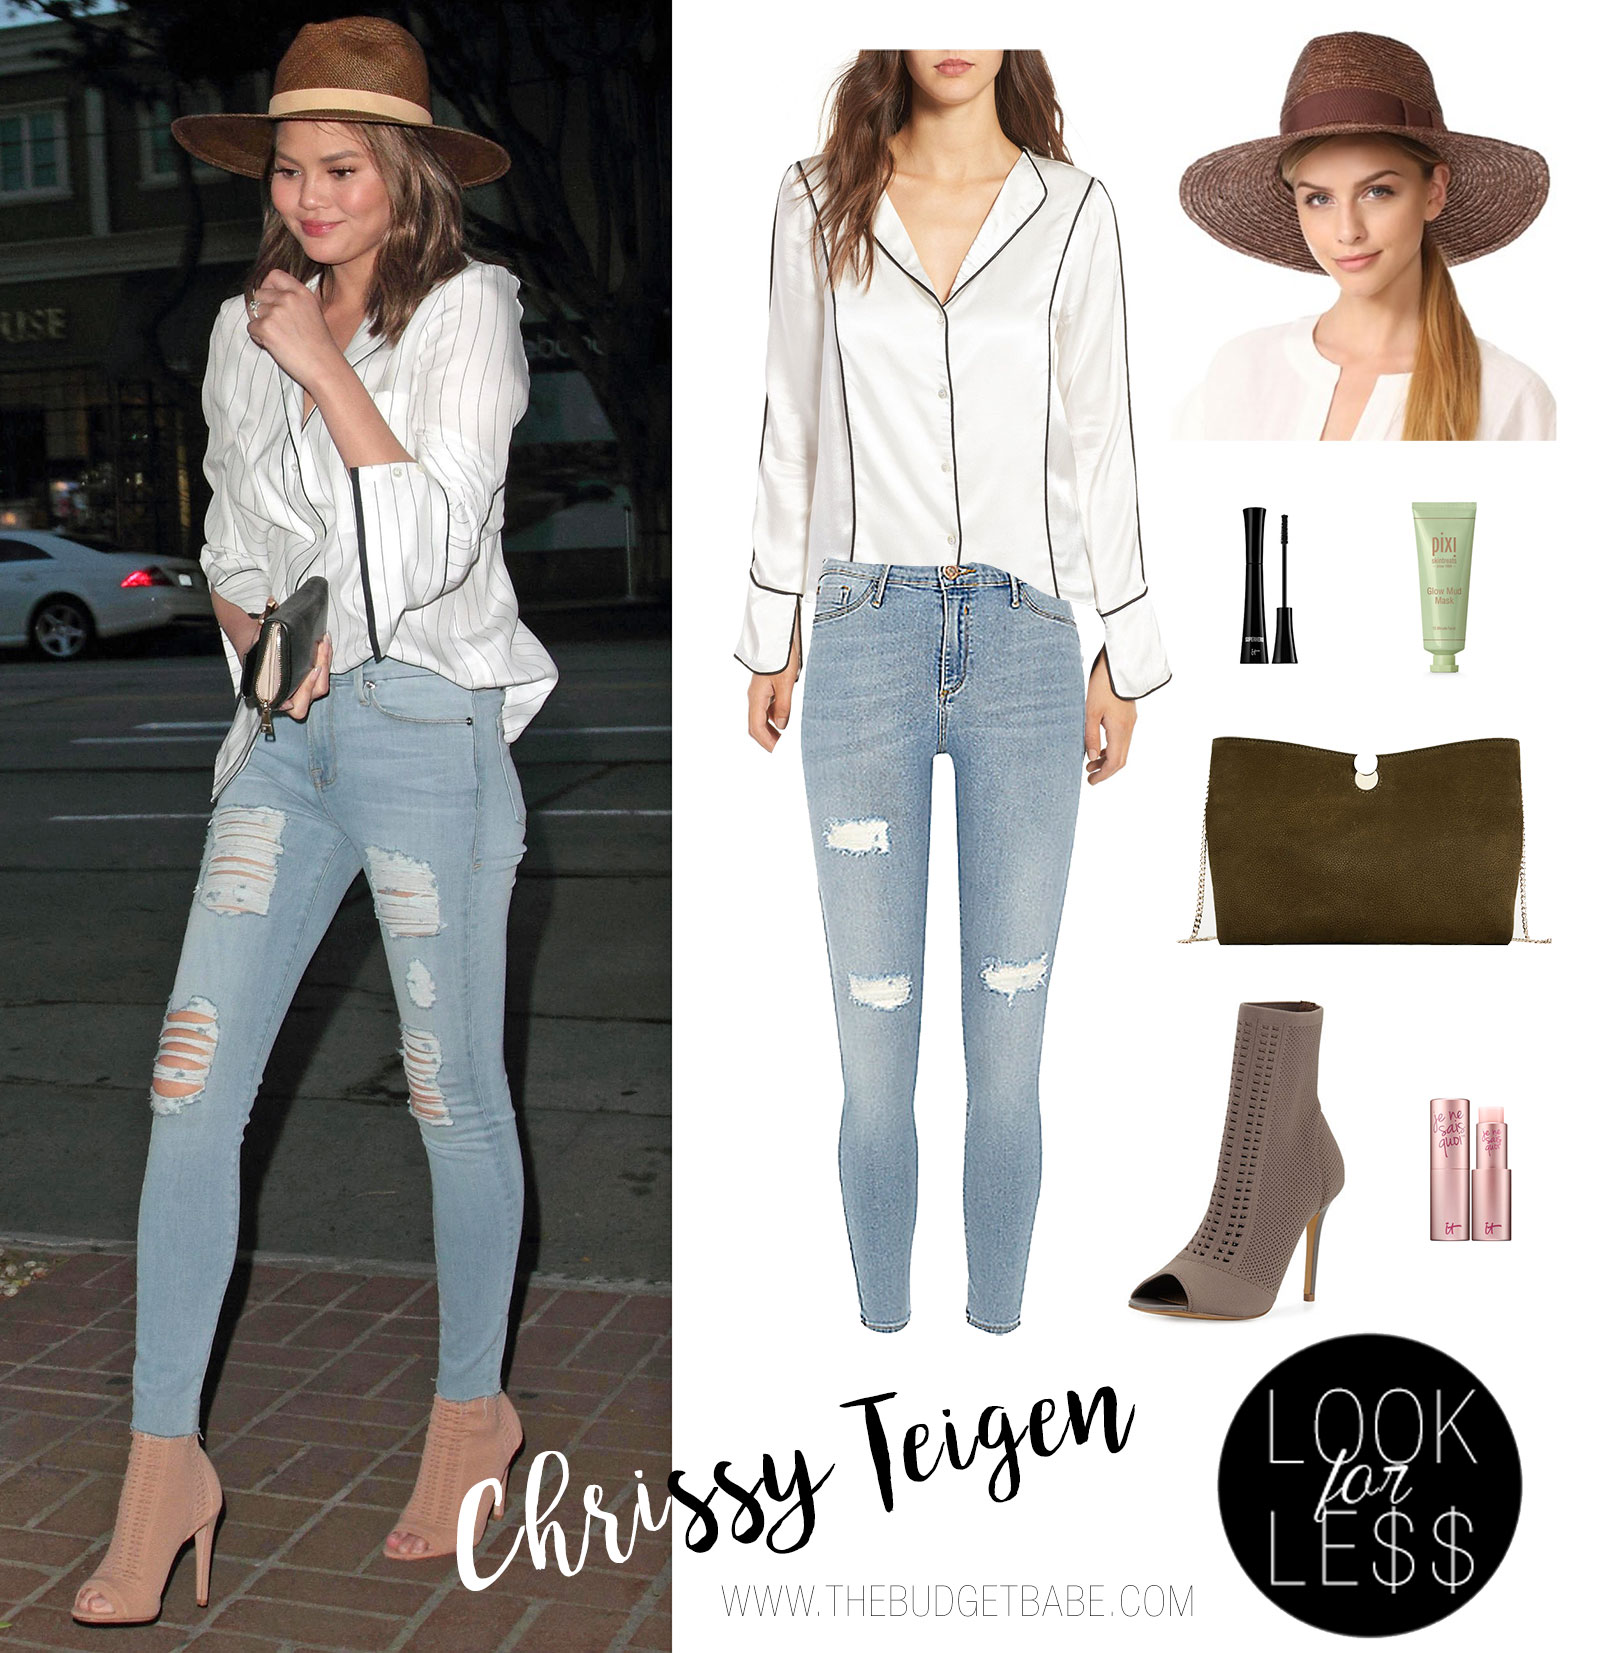 Chrissy Teigen wears the pajama trend with a Frame silk shirt and distressed skinny jeans.